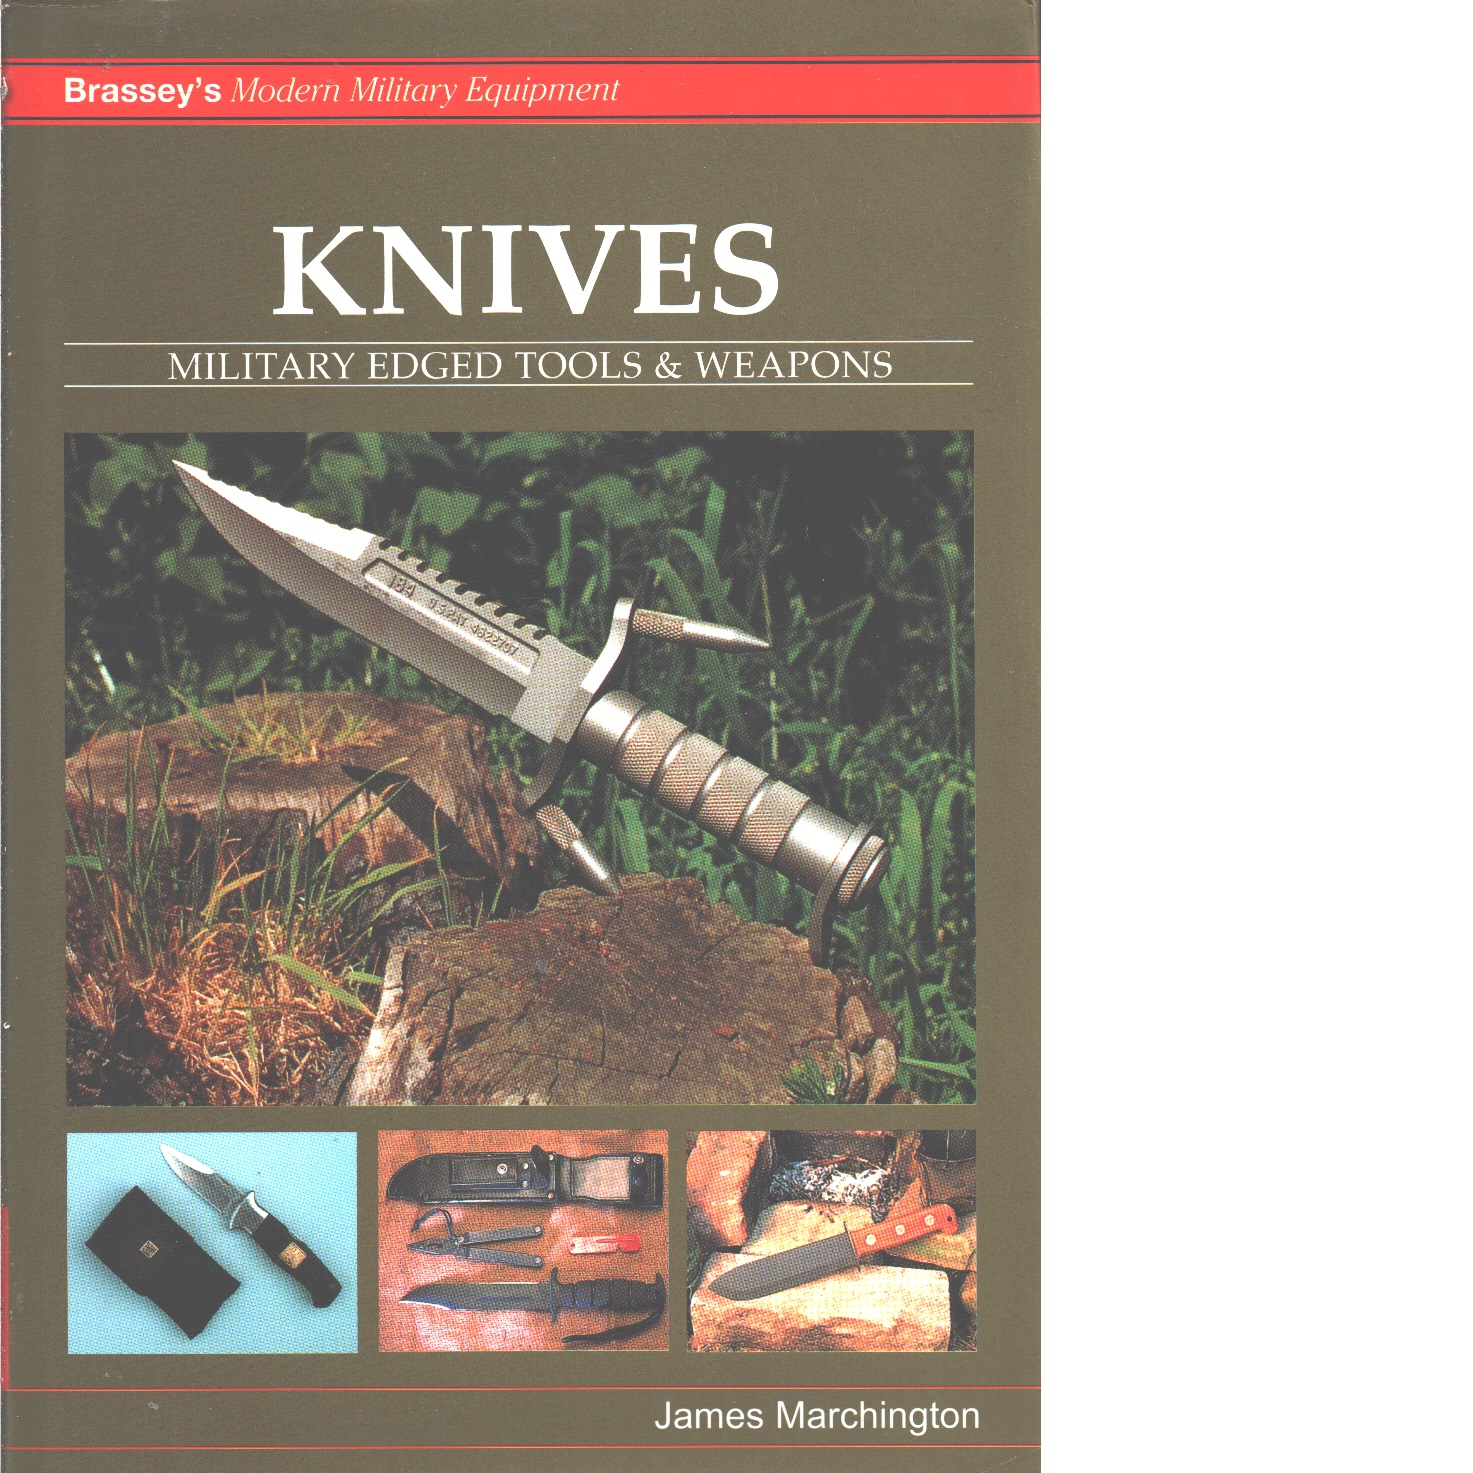 KNIVES: Military Edged Tools and Weapon - Marchington, James